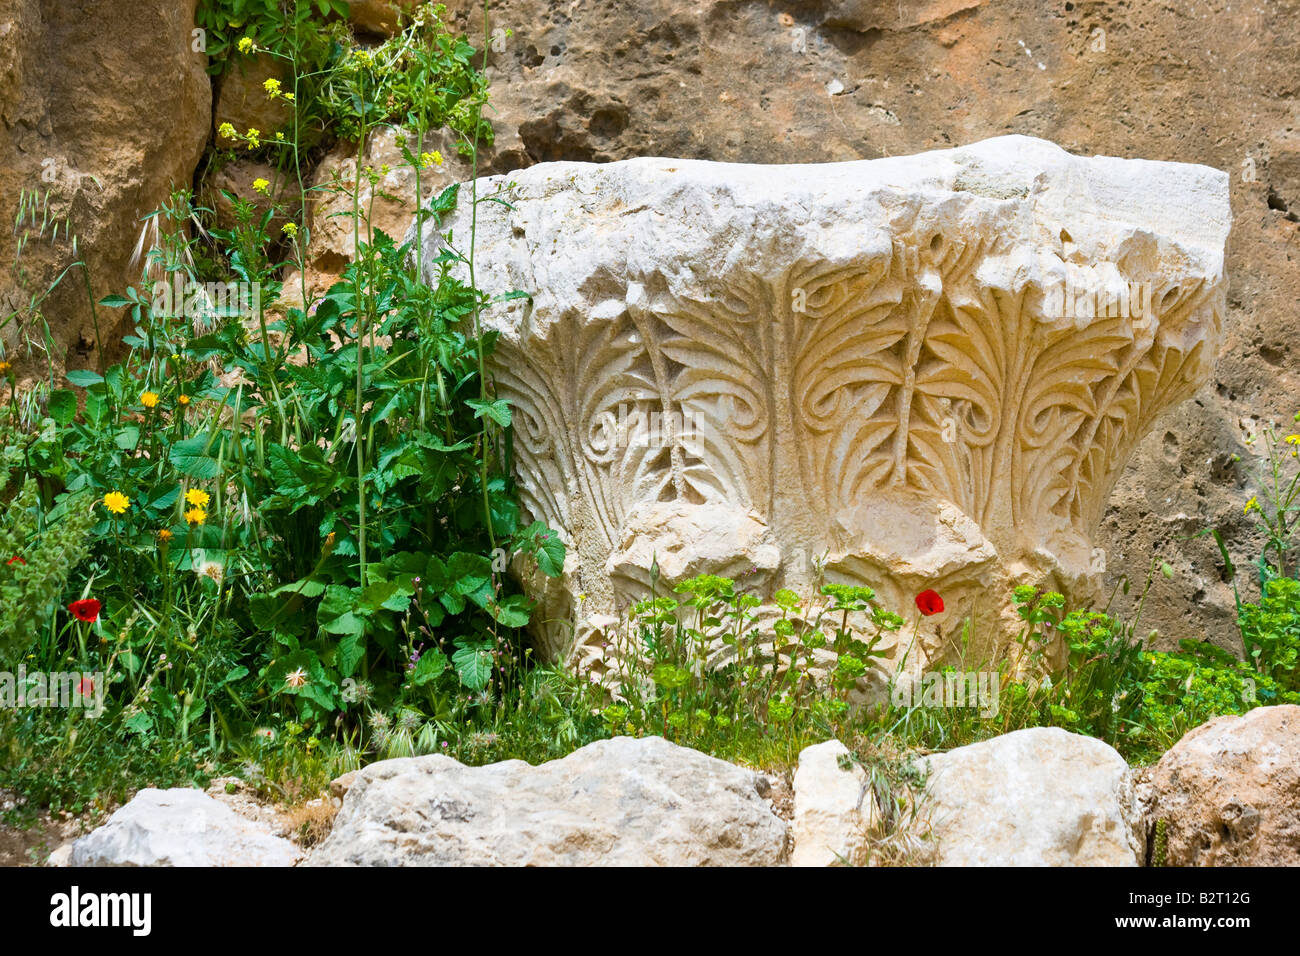 Roman Capital at Qalaat Misyaf One of the Assassin Castles in Syria - Stock Image